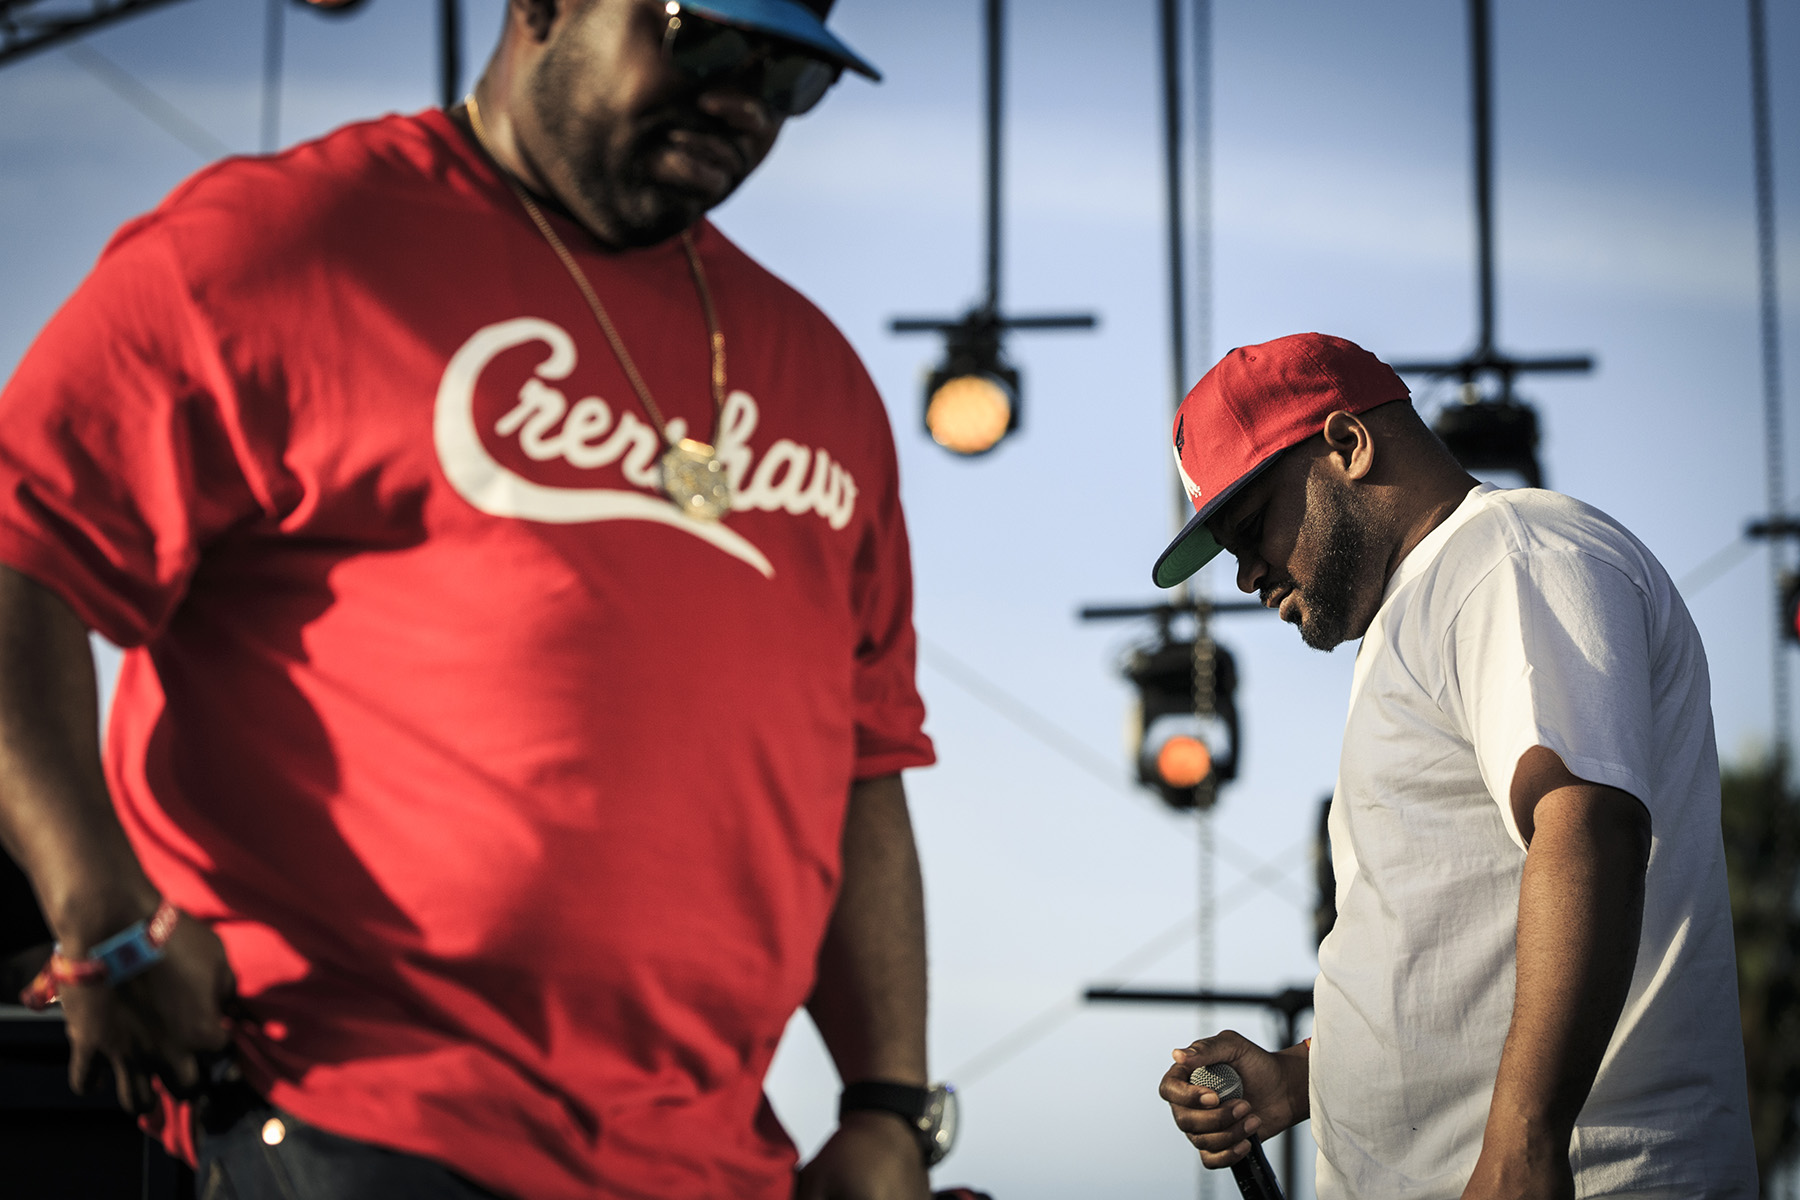 c10c4a0c62f 40 Best Things We Saw at Coachella 2015 – Rolling Stone